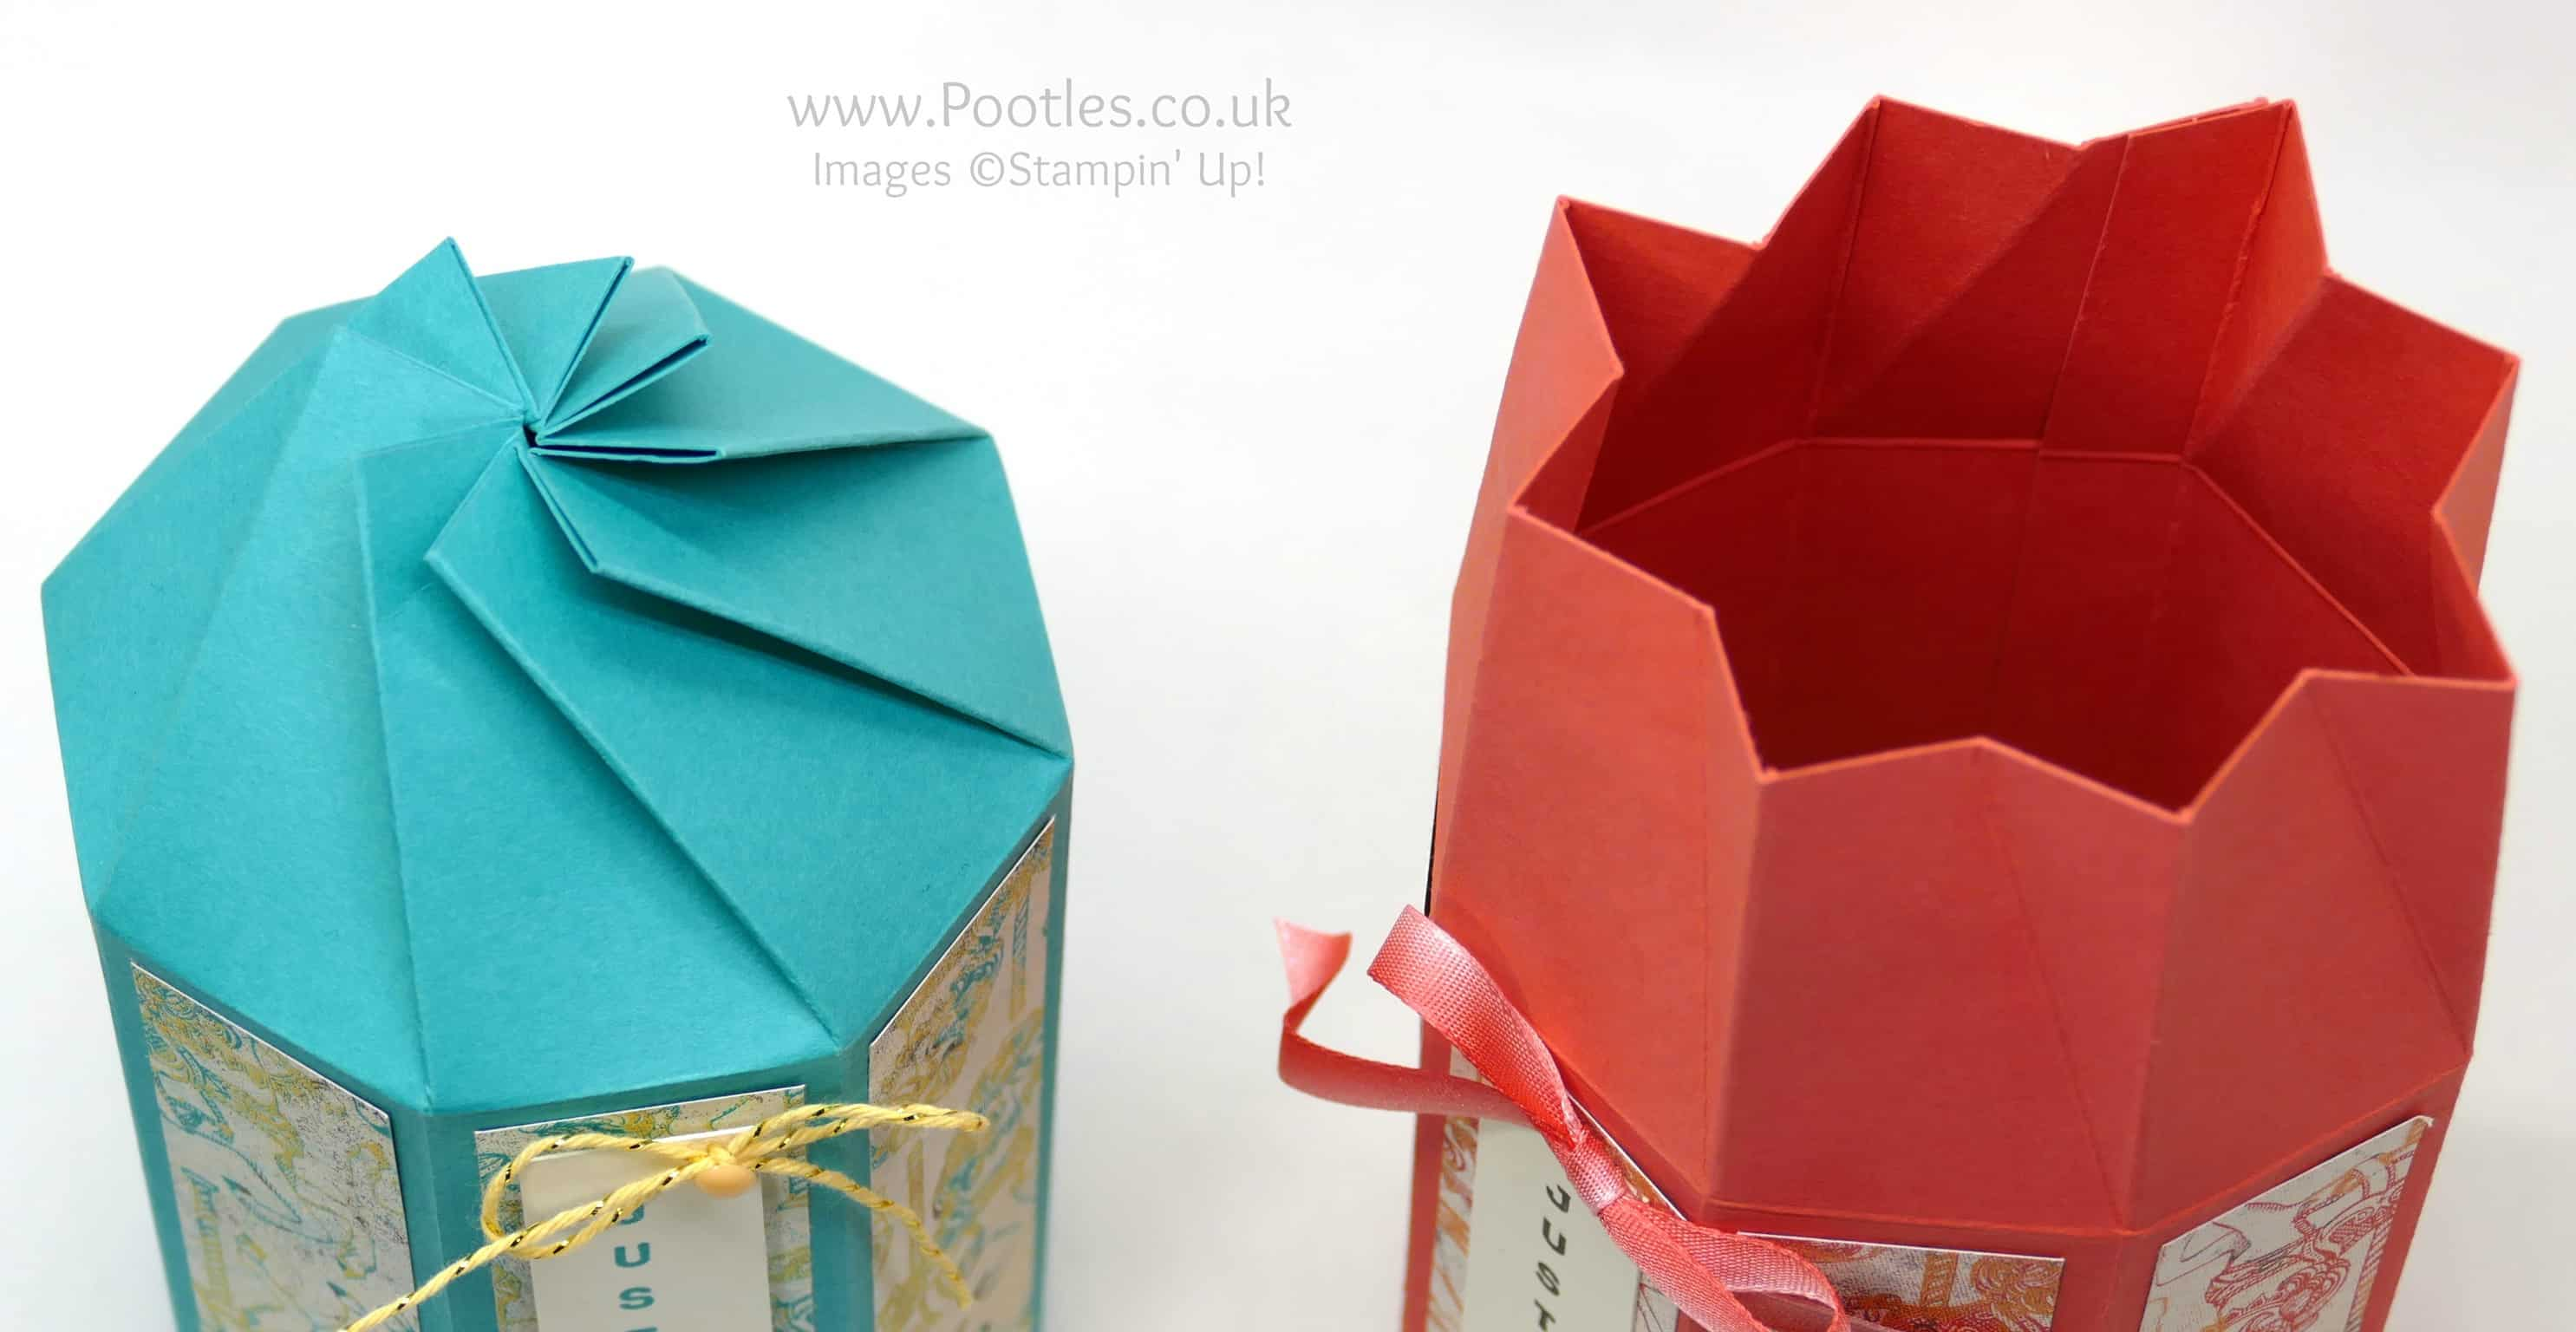 Twist & Close Octagonal Box Tutorial